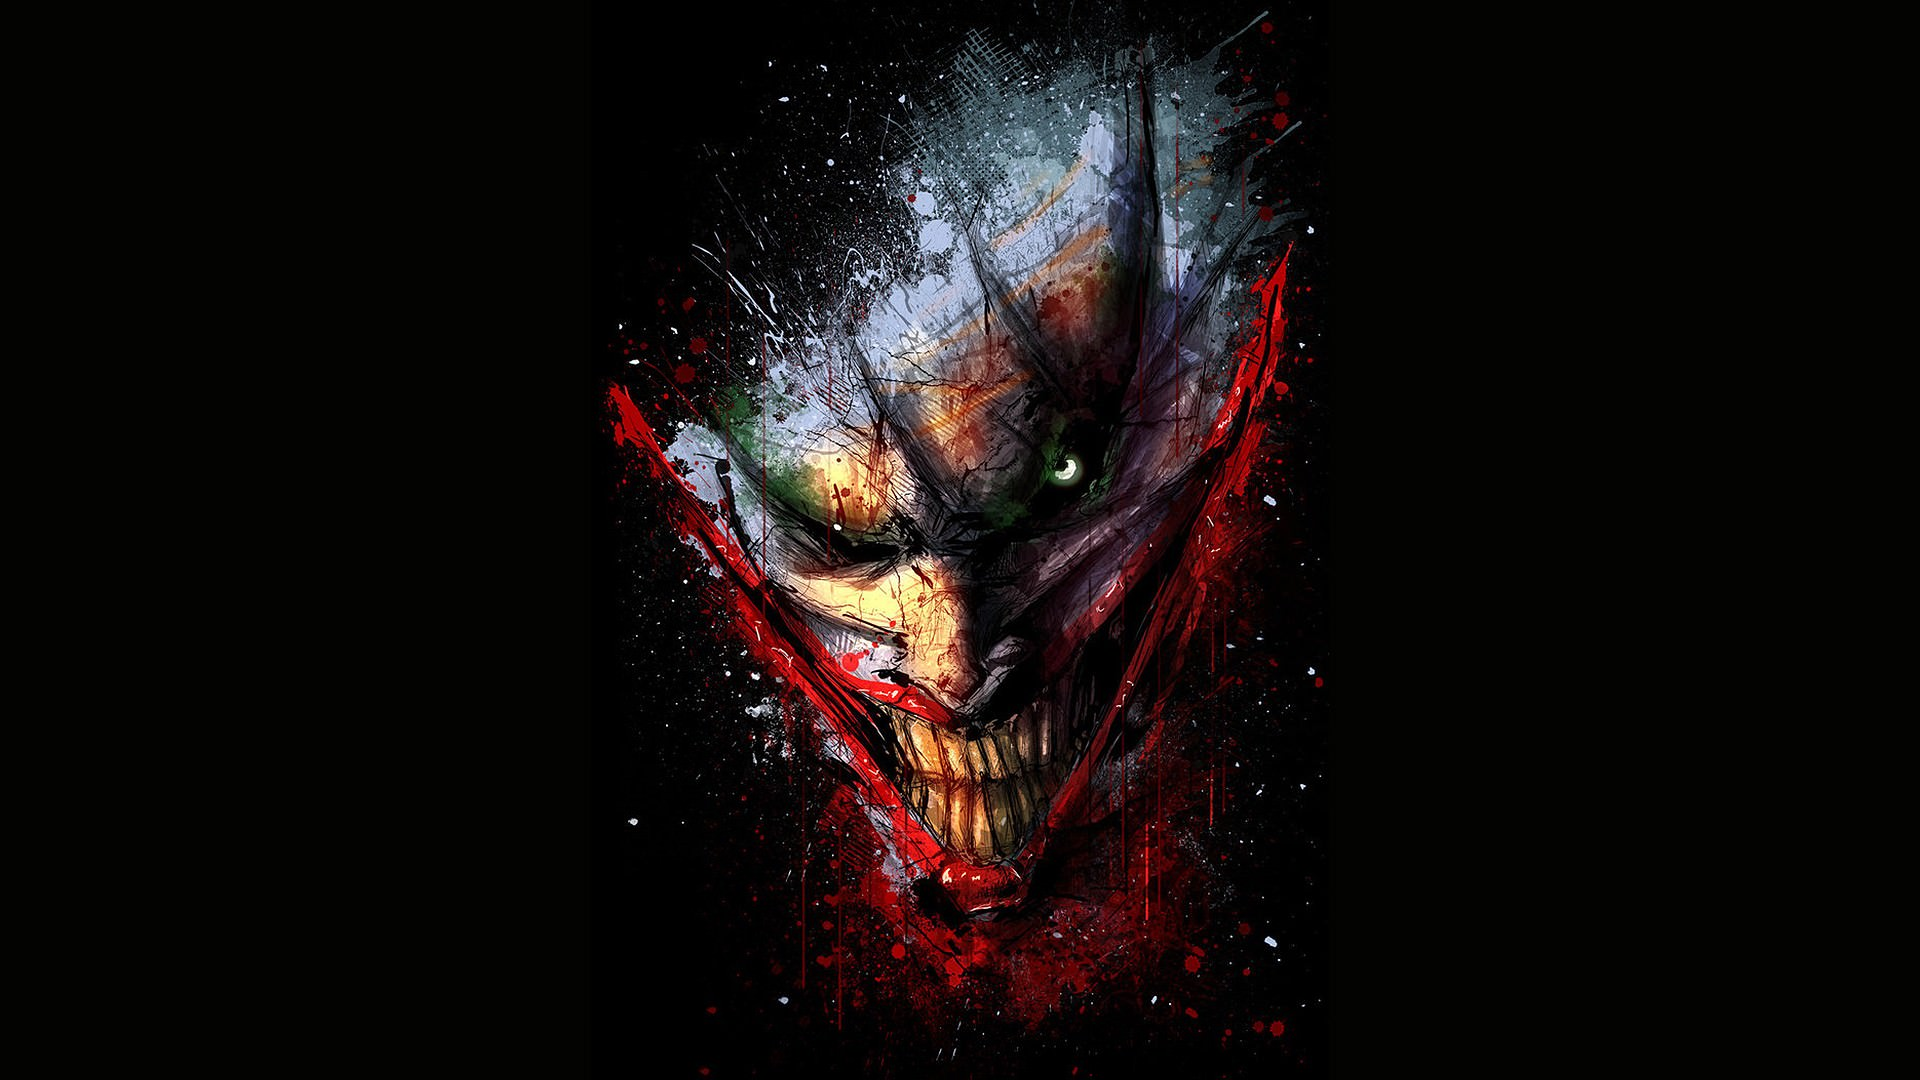 DigitalArtio DC Comics   The Joker Wallpaper DC Comics 1920x1080